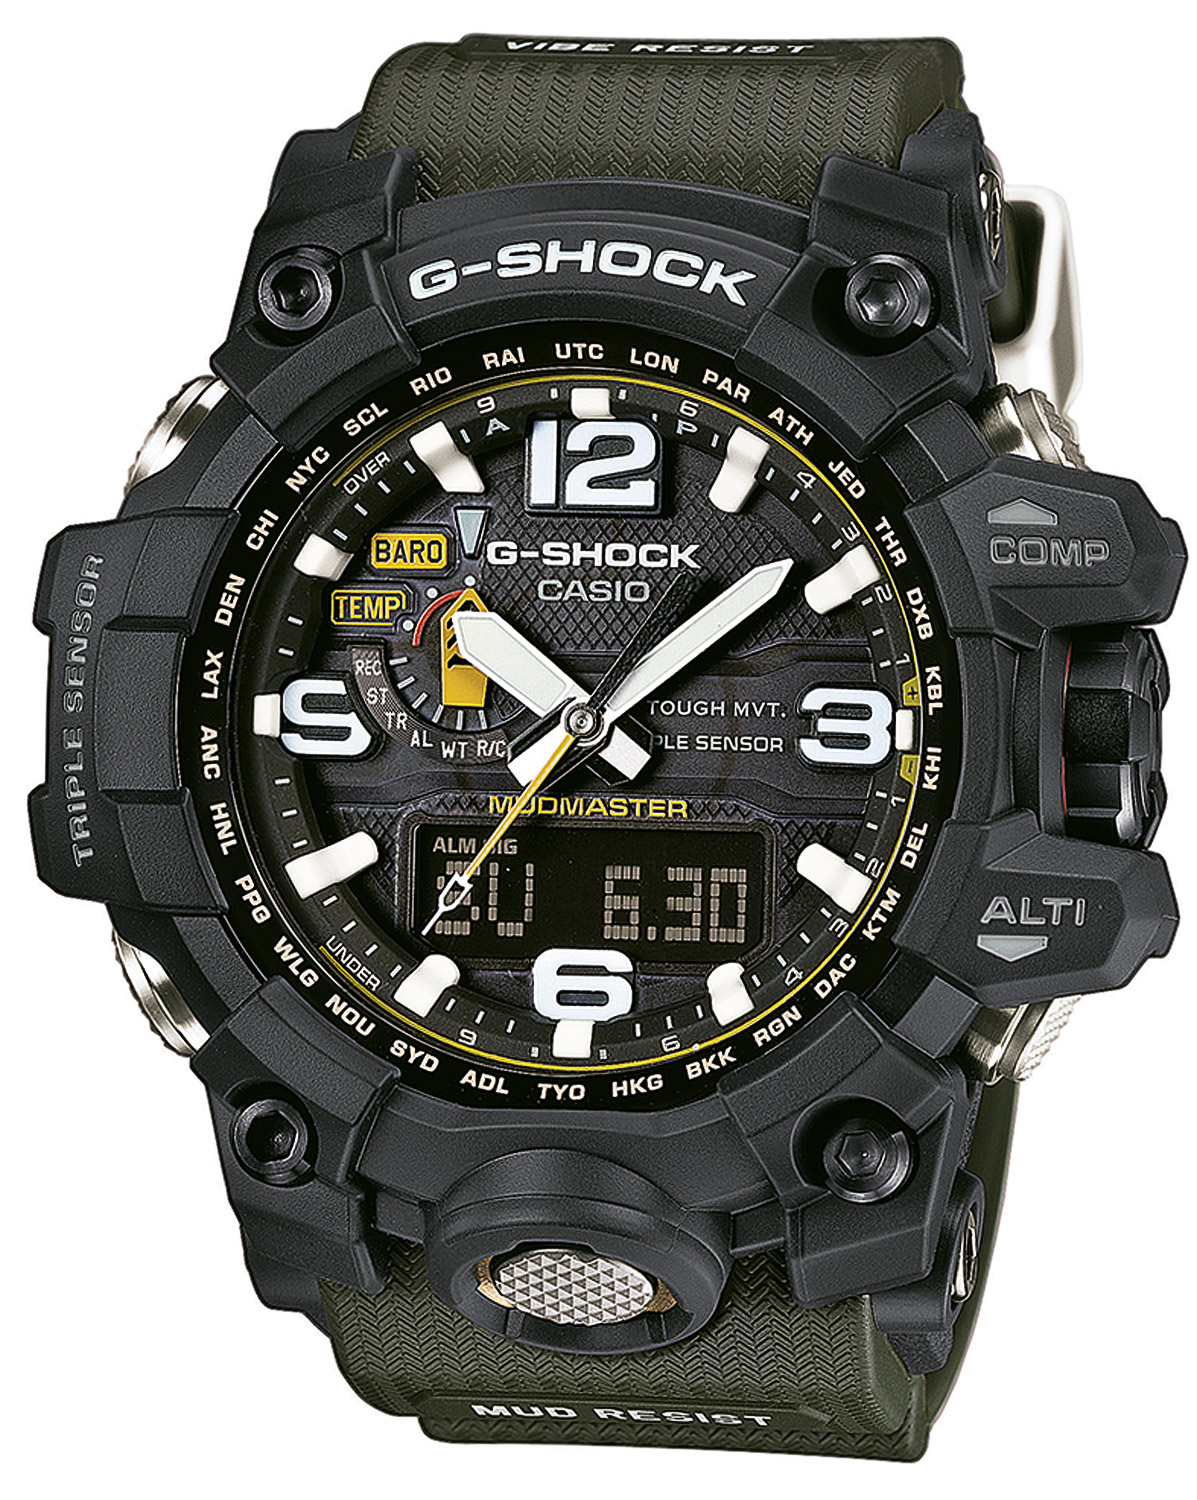 Radio Controlled Solar Watches at low prices • uhrcenter Shop 186a74500a